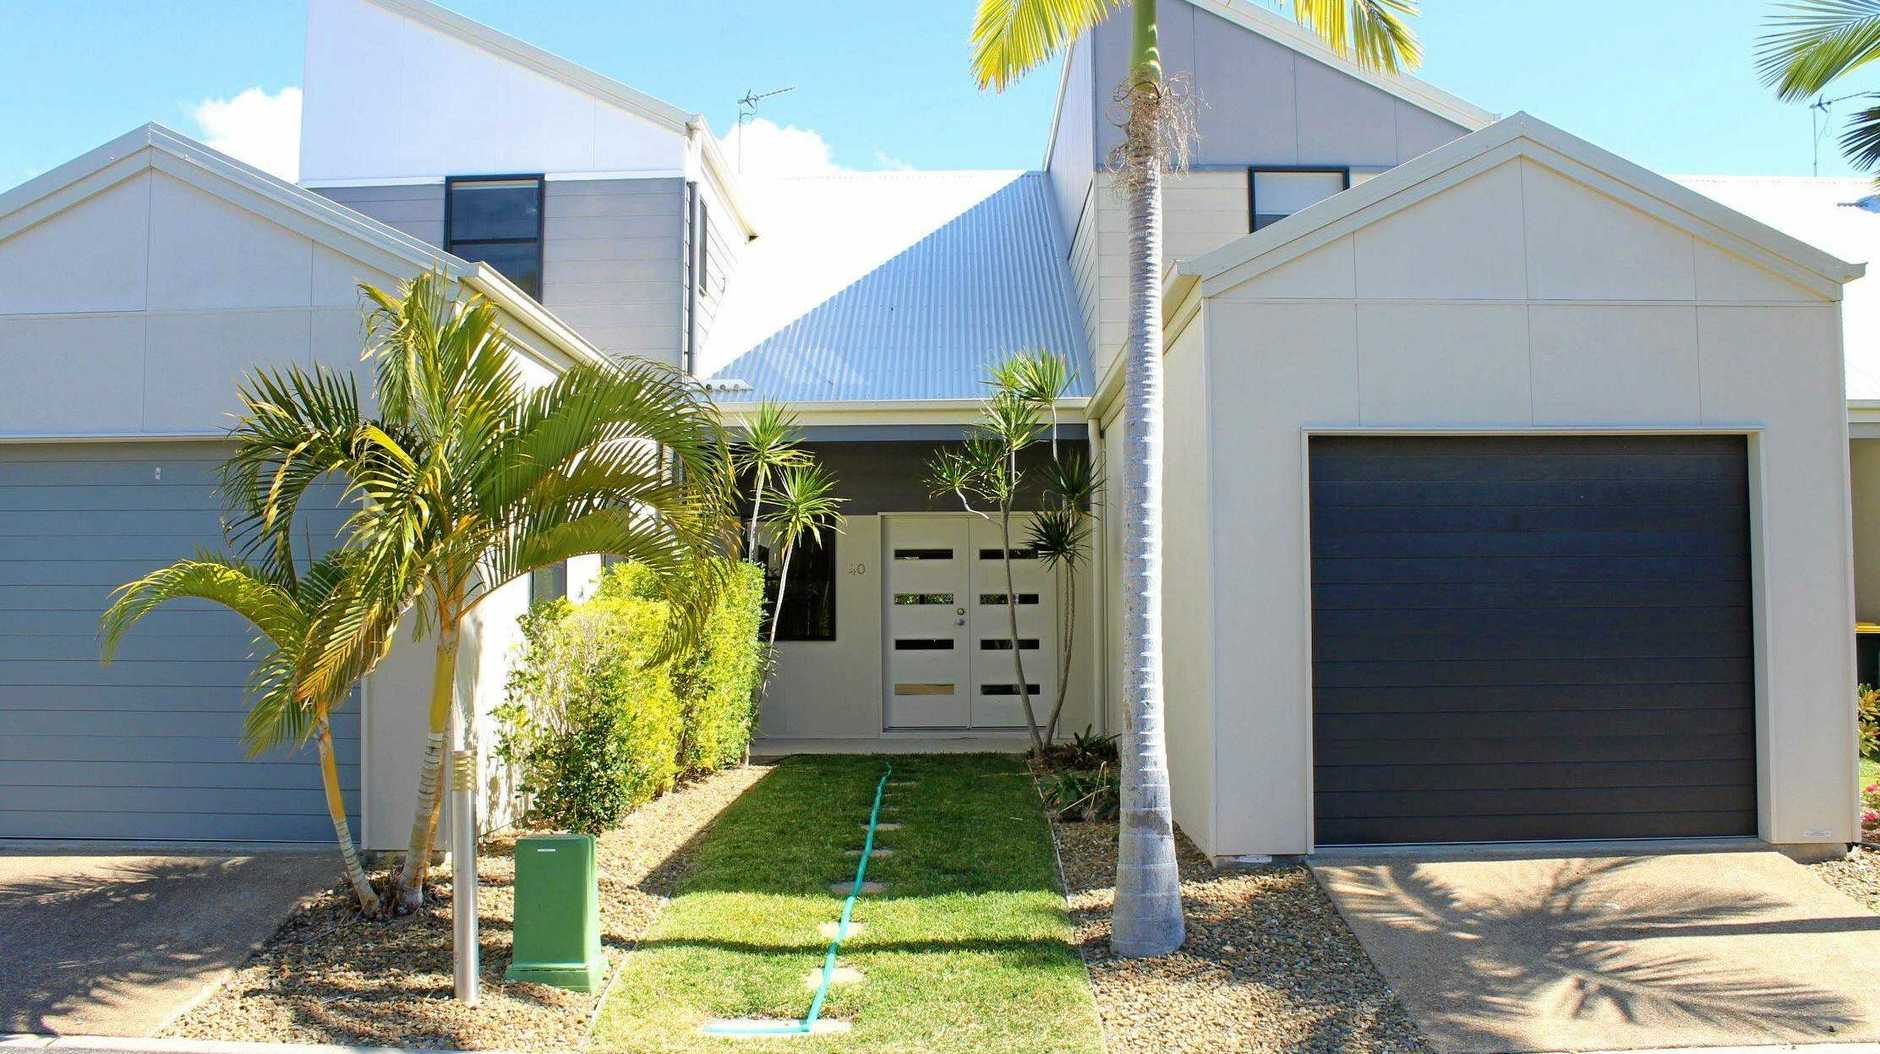 ON THE MARKET: 40/1 Michel Pl, Telina,   is listed on realestate.com.au for $179,000.